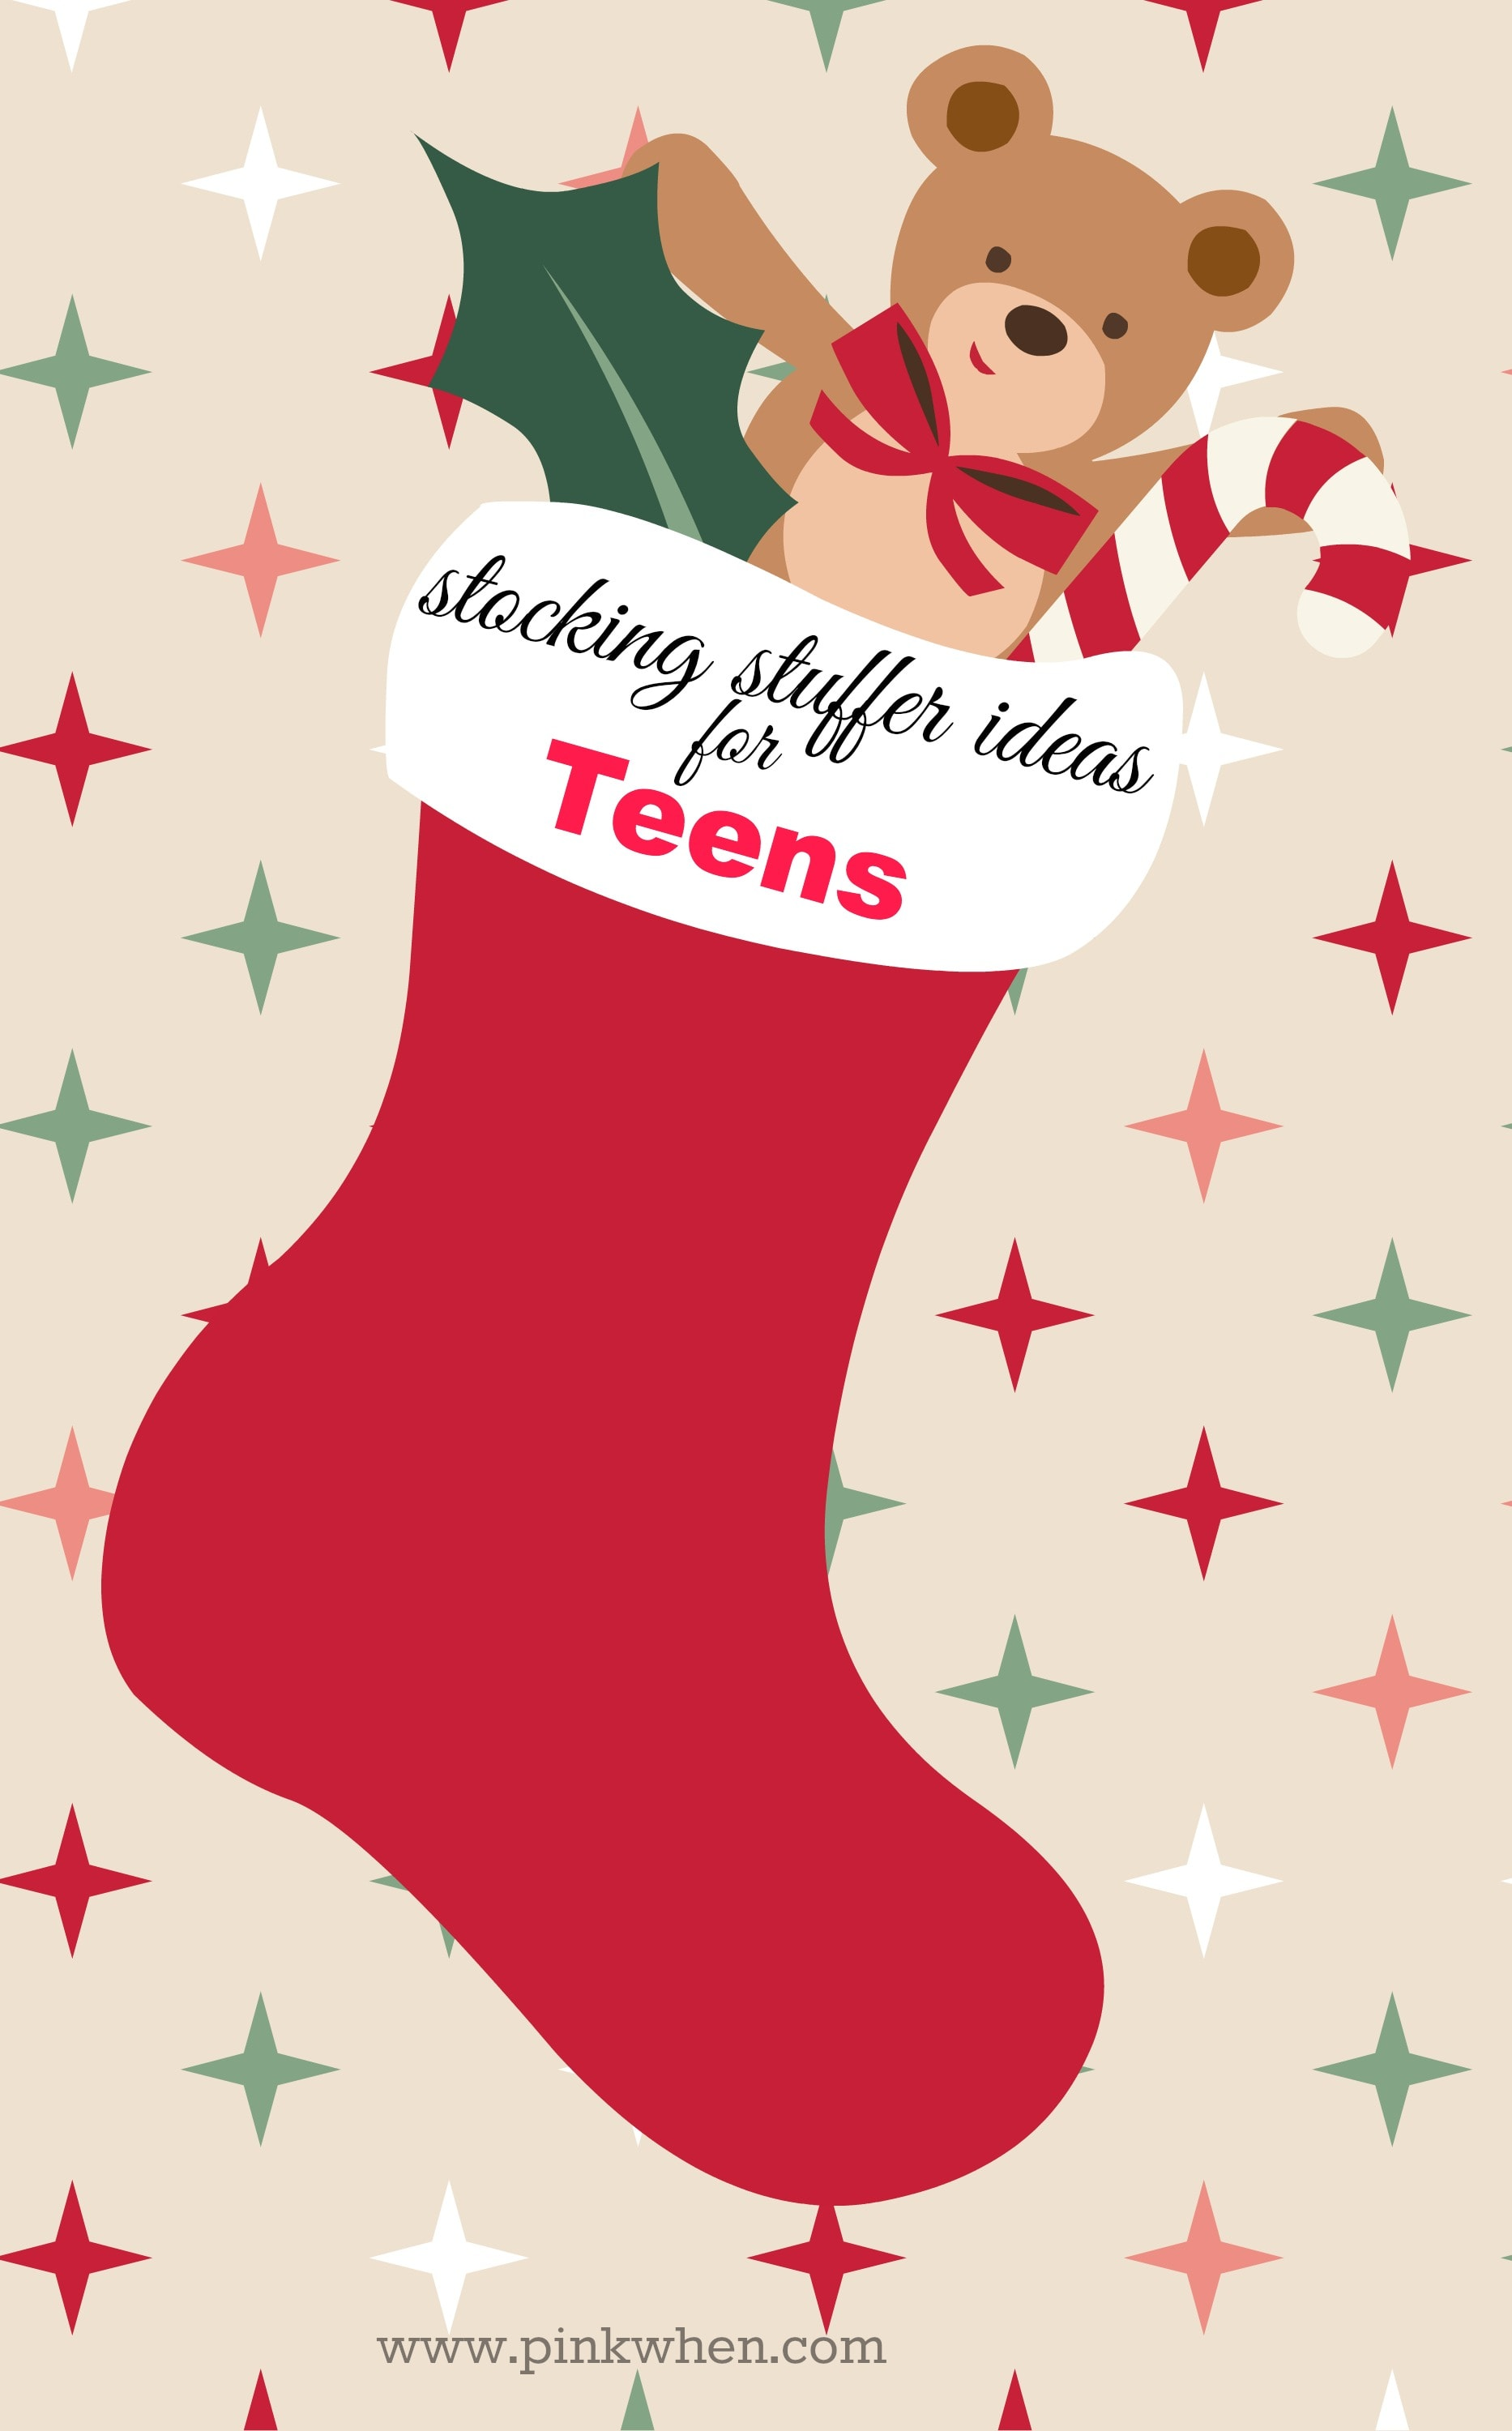 Stocking stuffer ideas for teens was the obvious choice for this year, but honestly? It intimidated me a little bit. I feel like the teen stage is a hard age group to buy for.